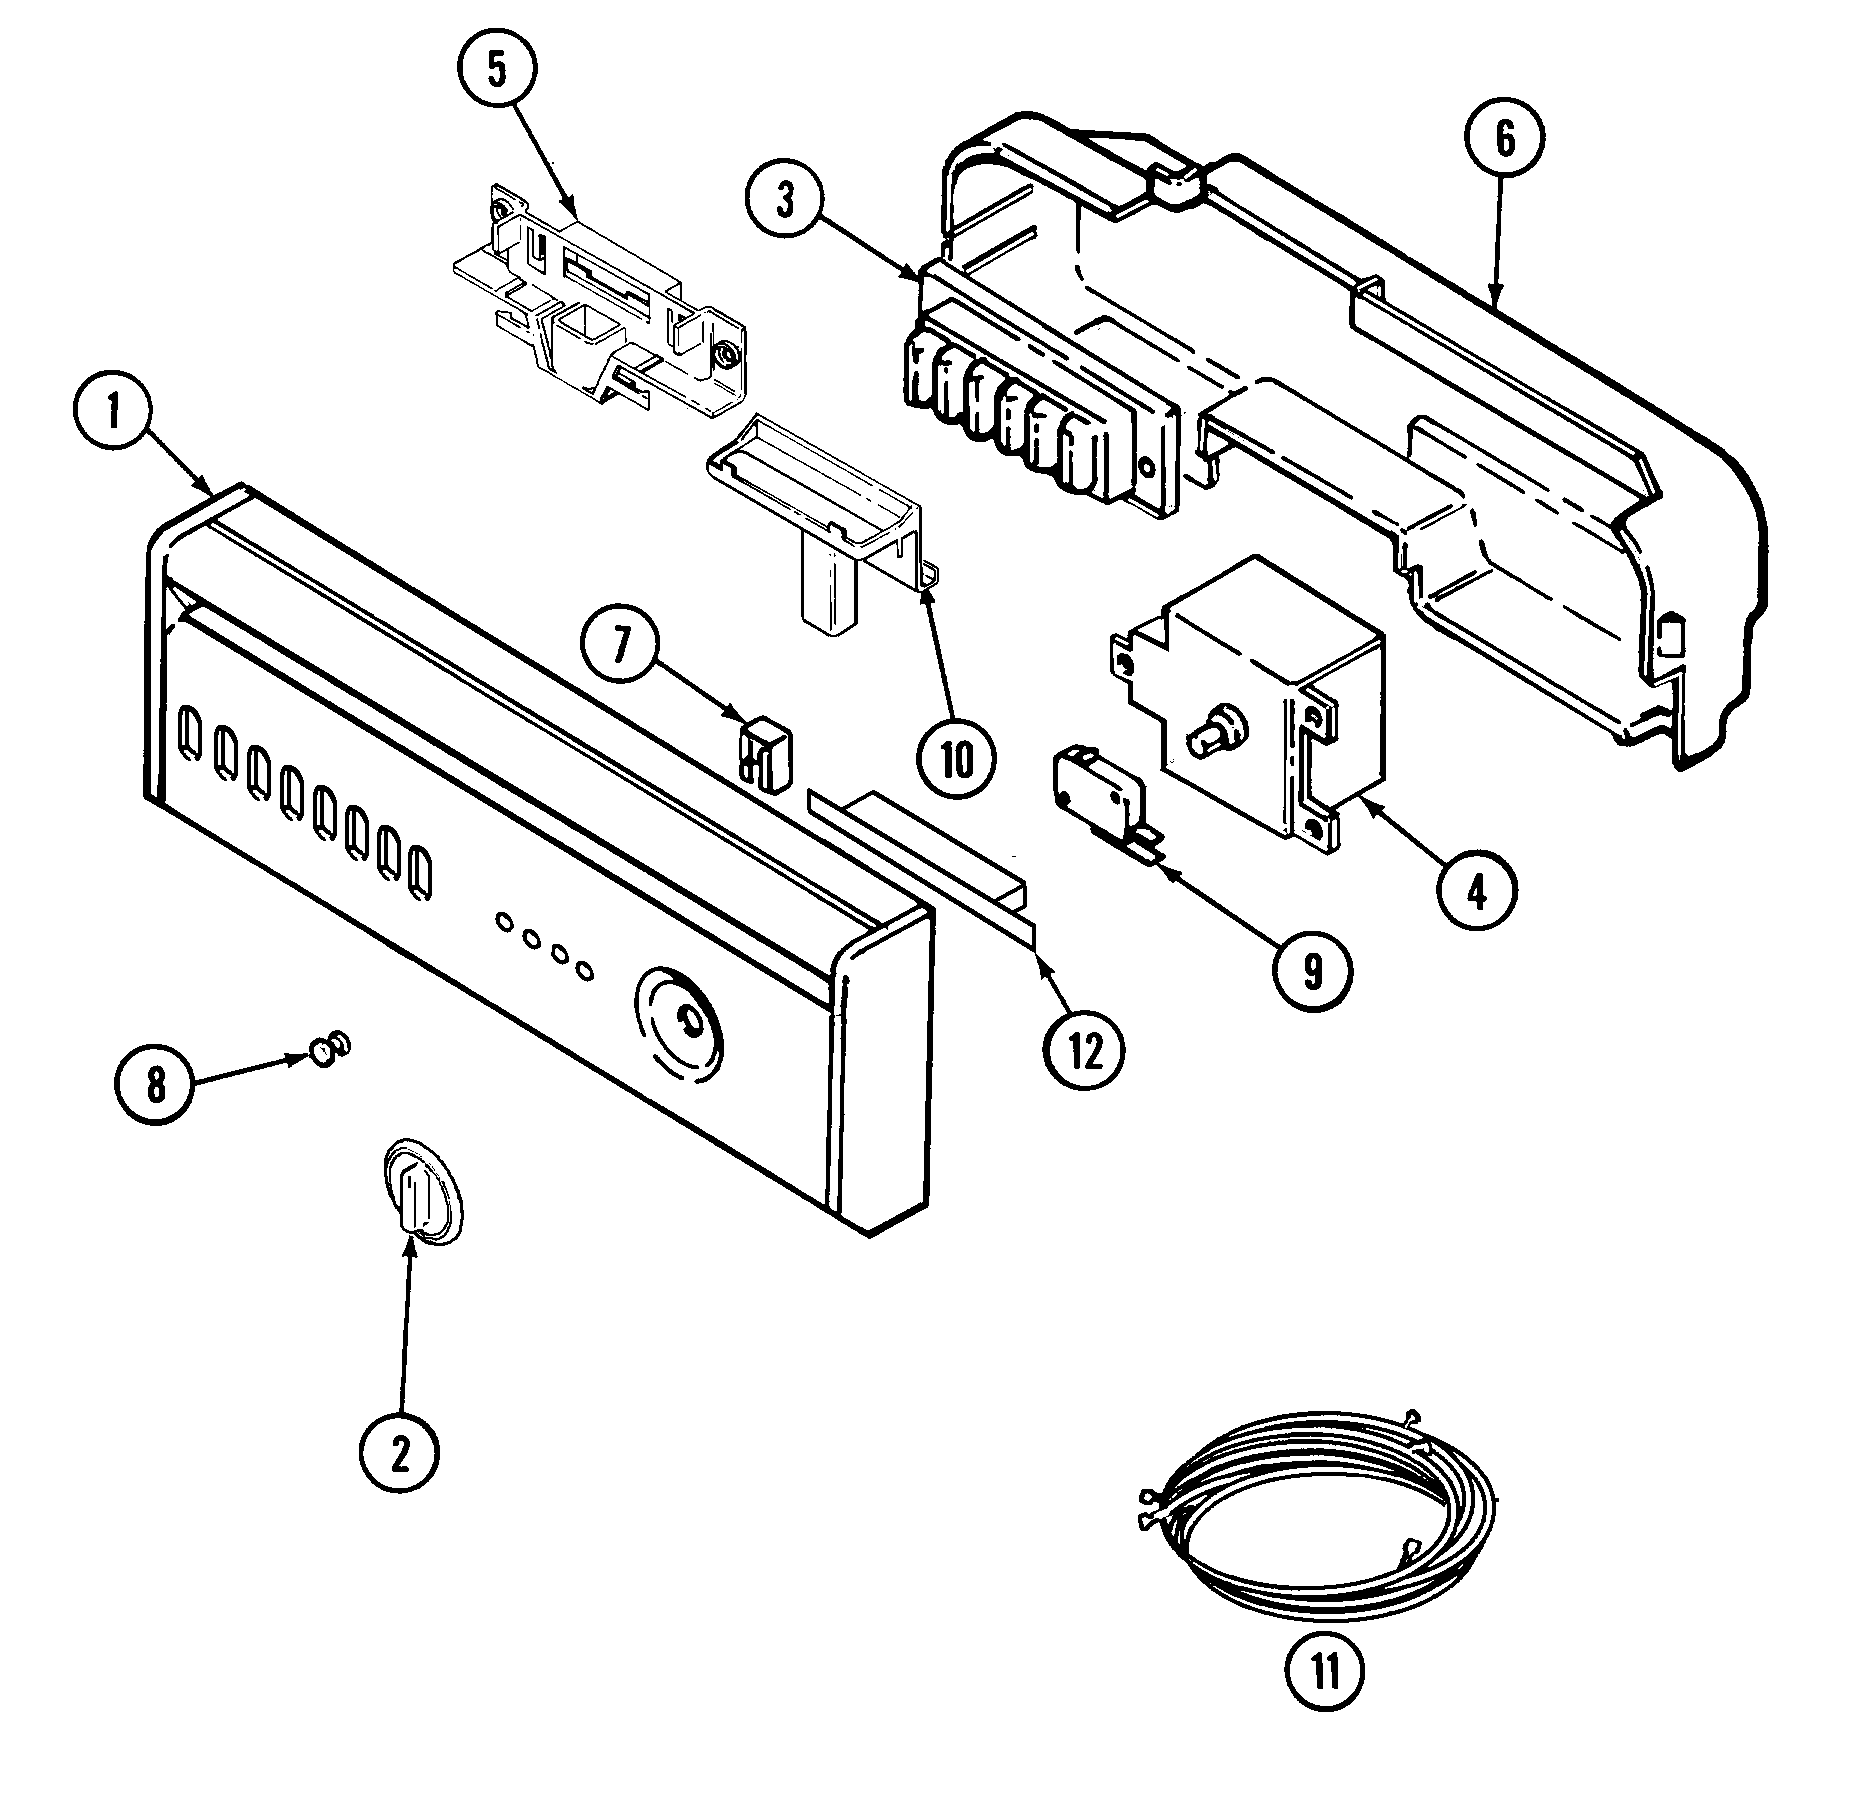 wiring diagram for maytag dishwasher